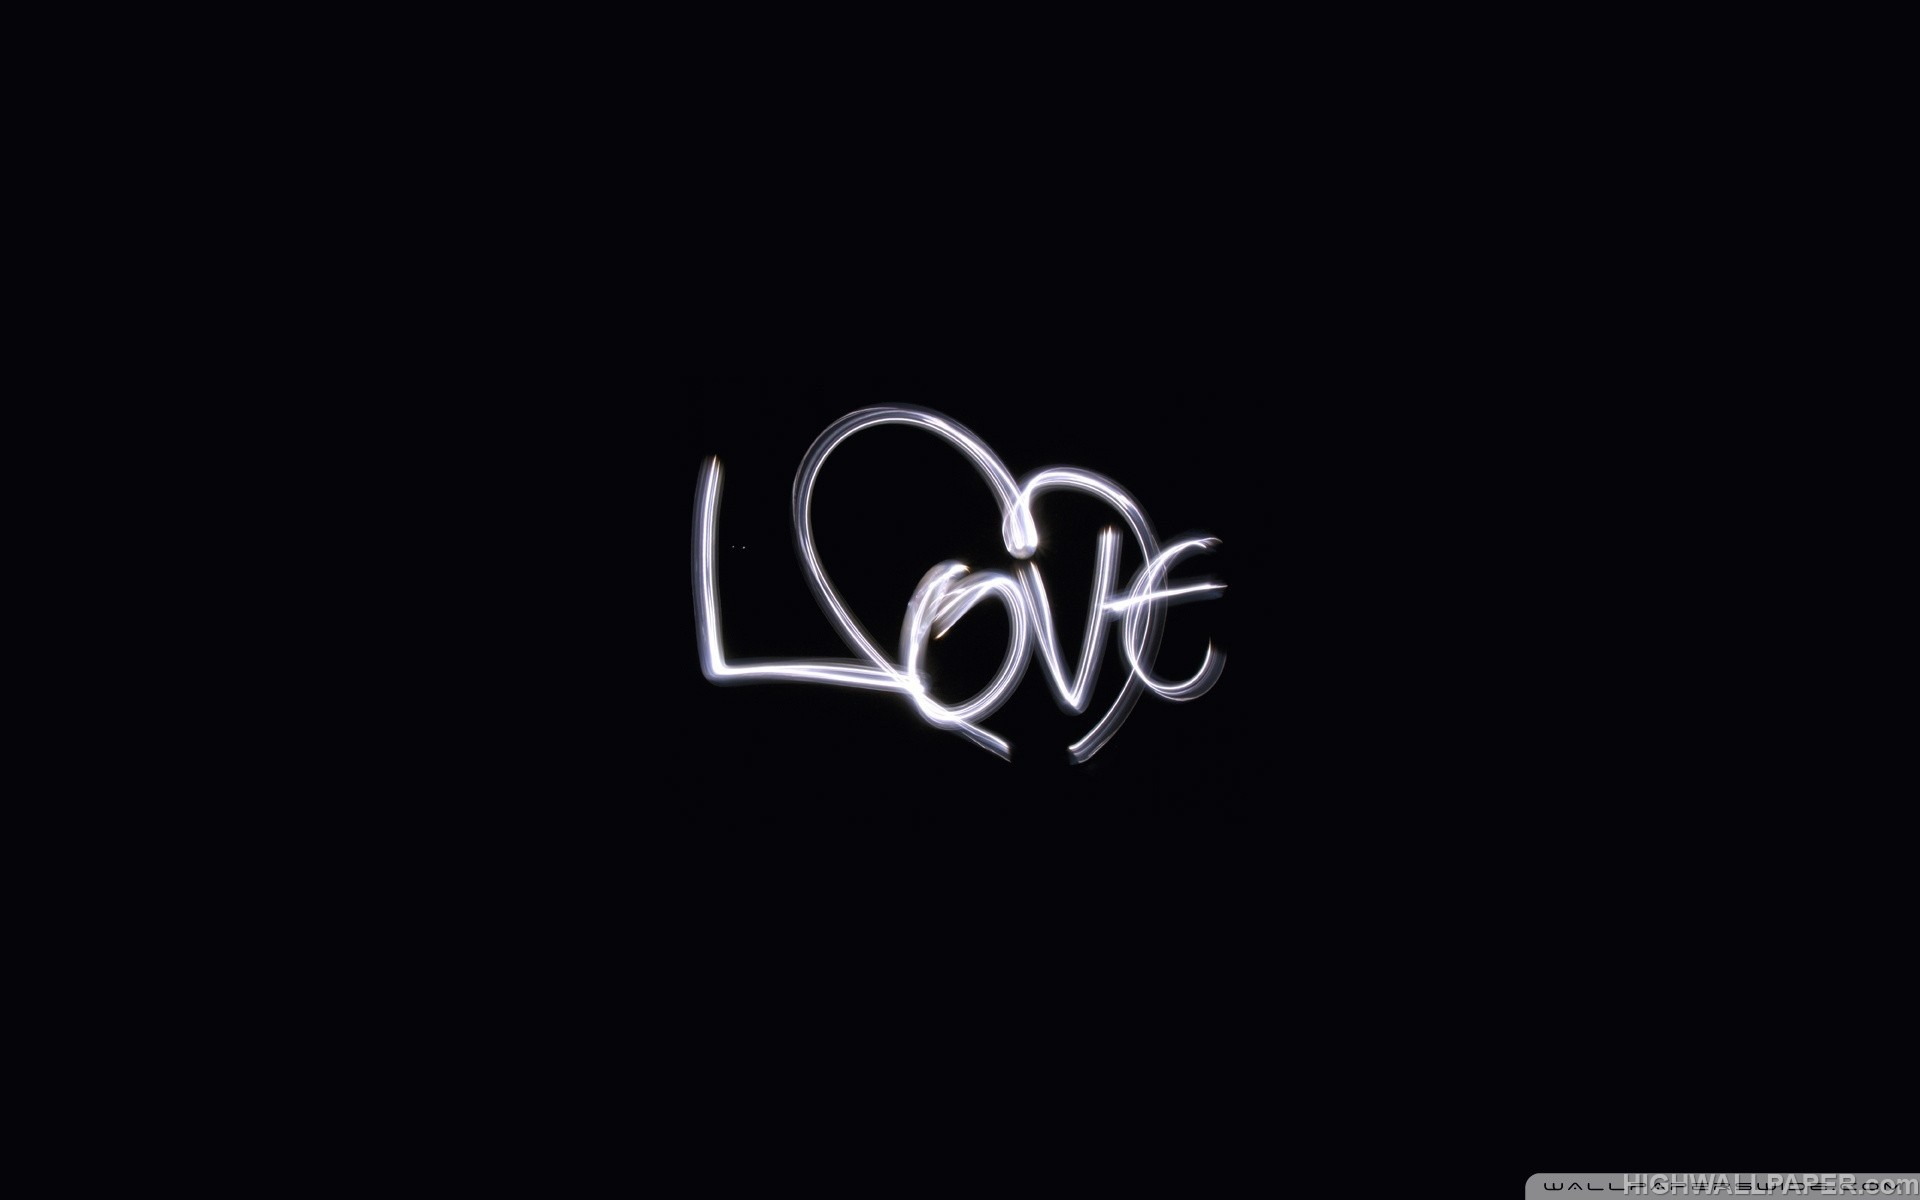 Love Wallpapers With Text : Love Text in Black Background HD Wallpaper